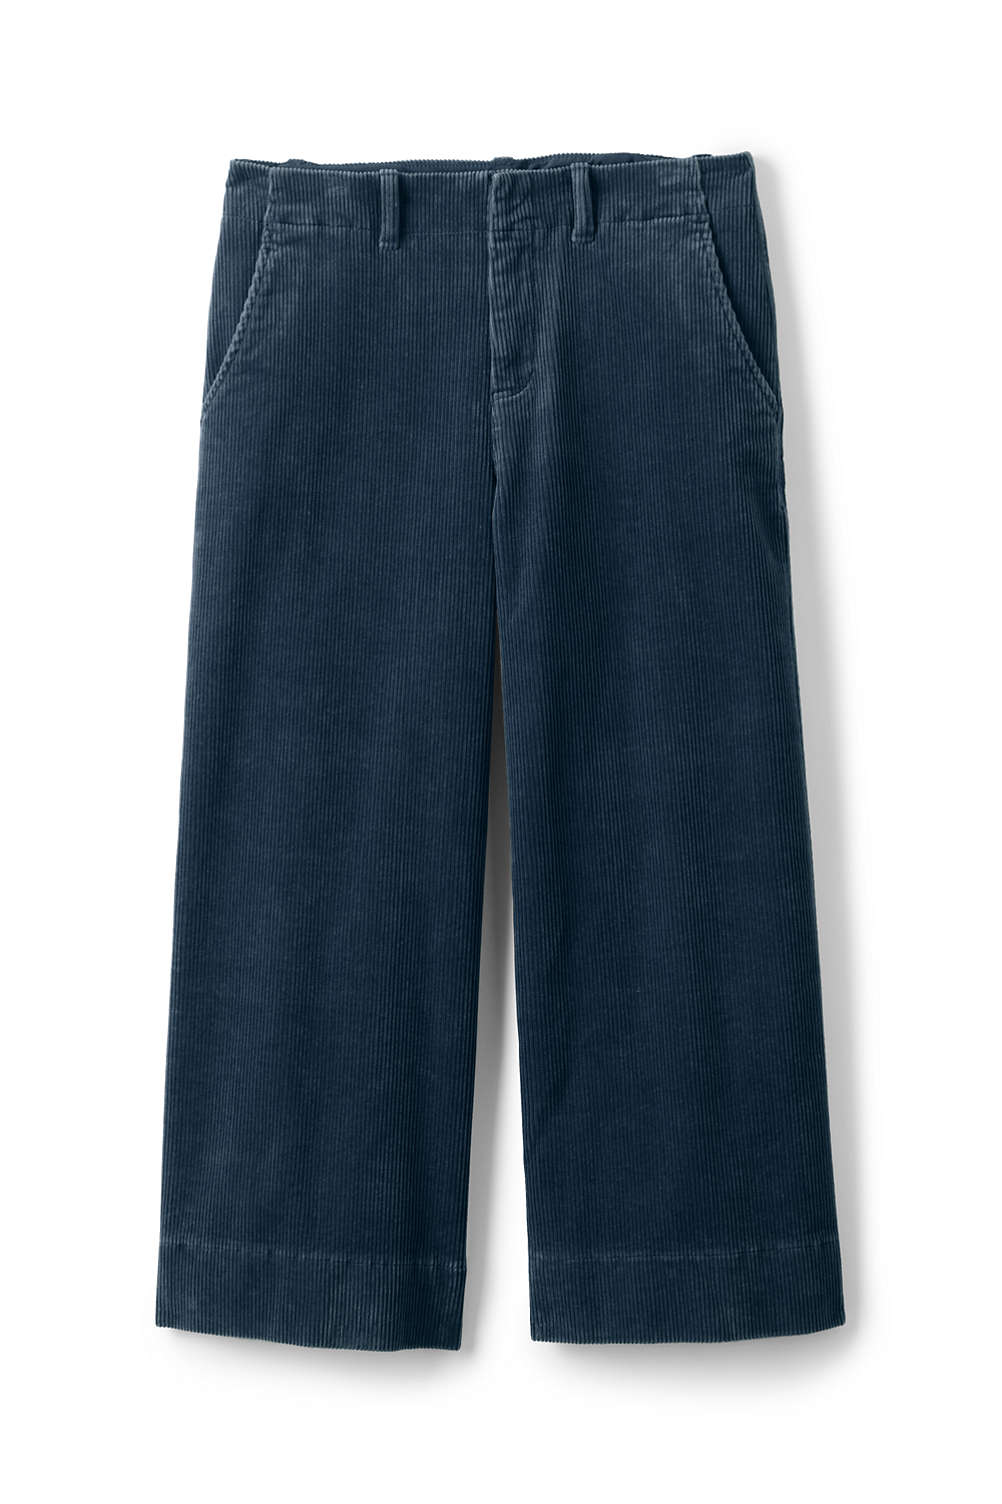 b276f07103d Women s Plus Size Wide Wale Corduroy Crop Pants from Lands  End